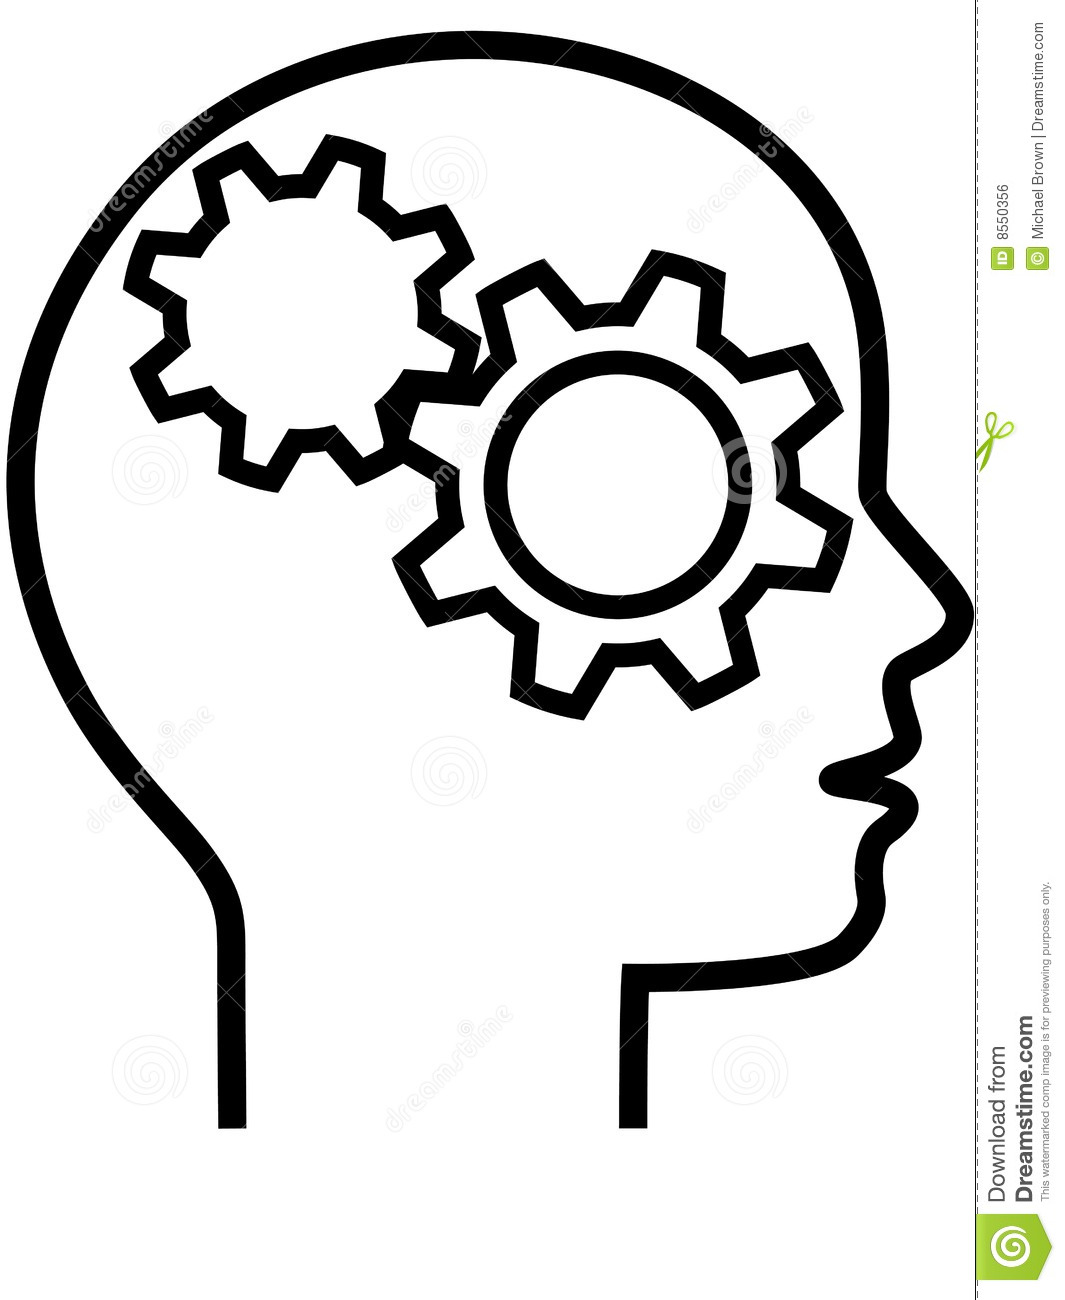 Profile Of Gear Head Brain Thinker Outline Royalty Free ...